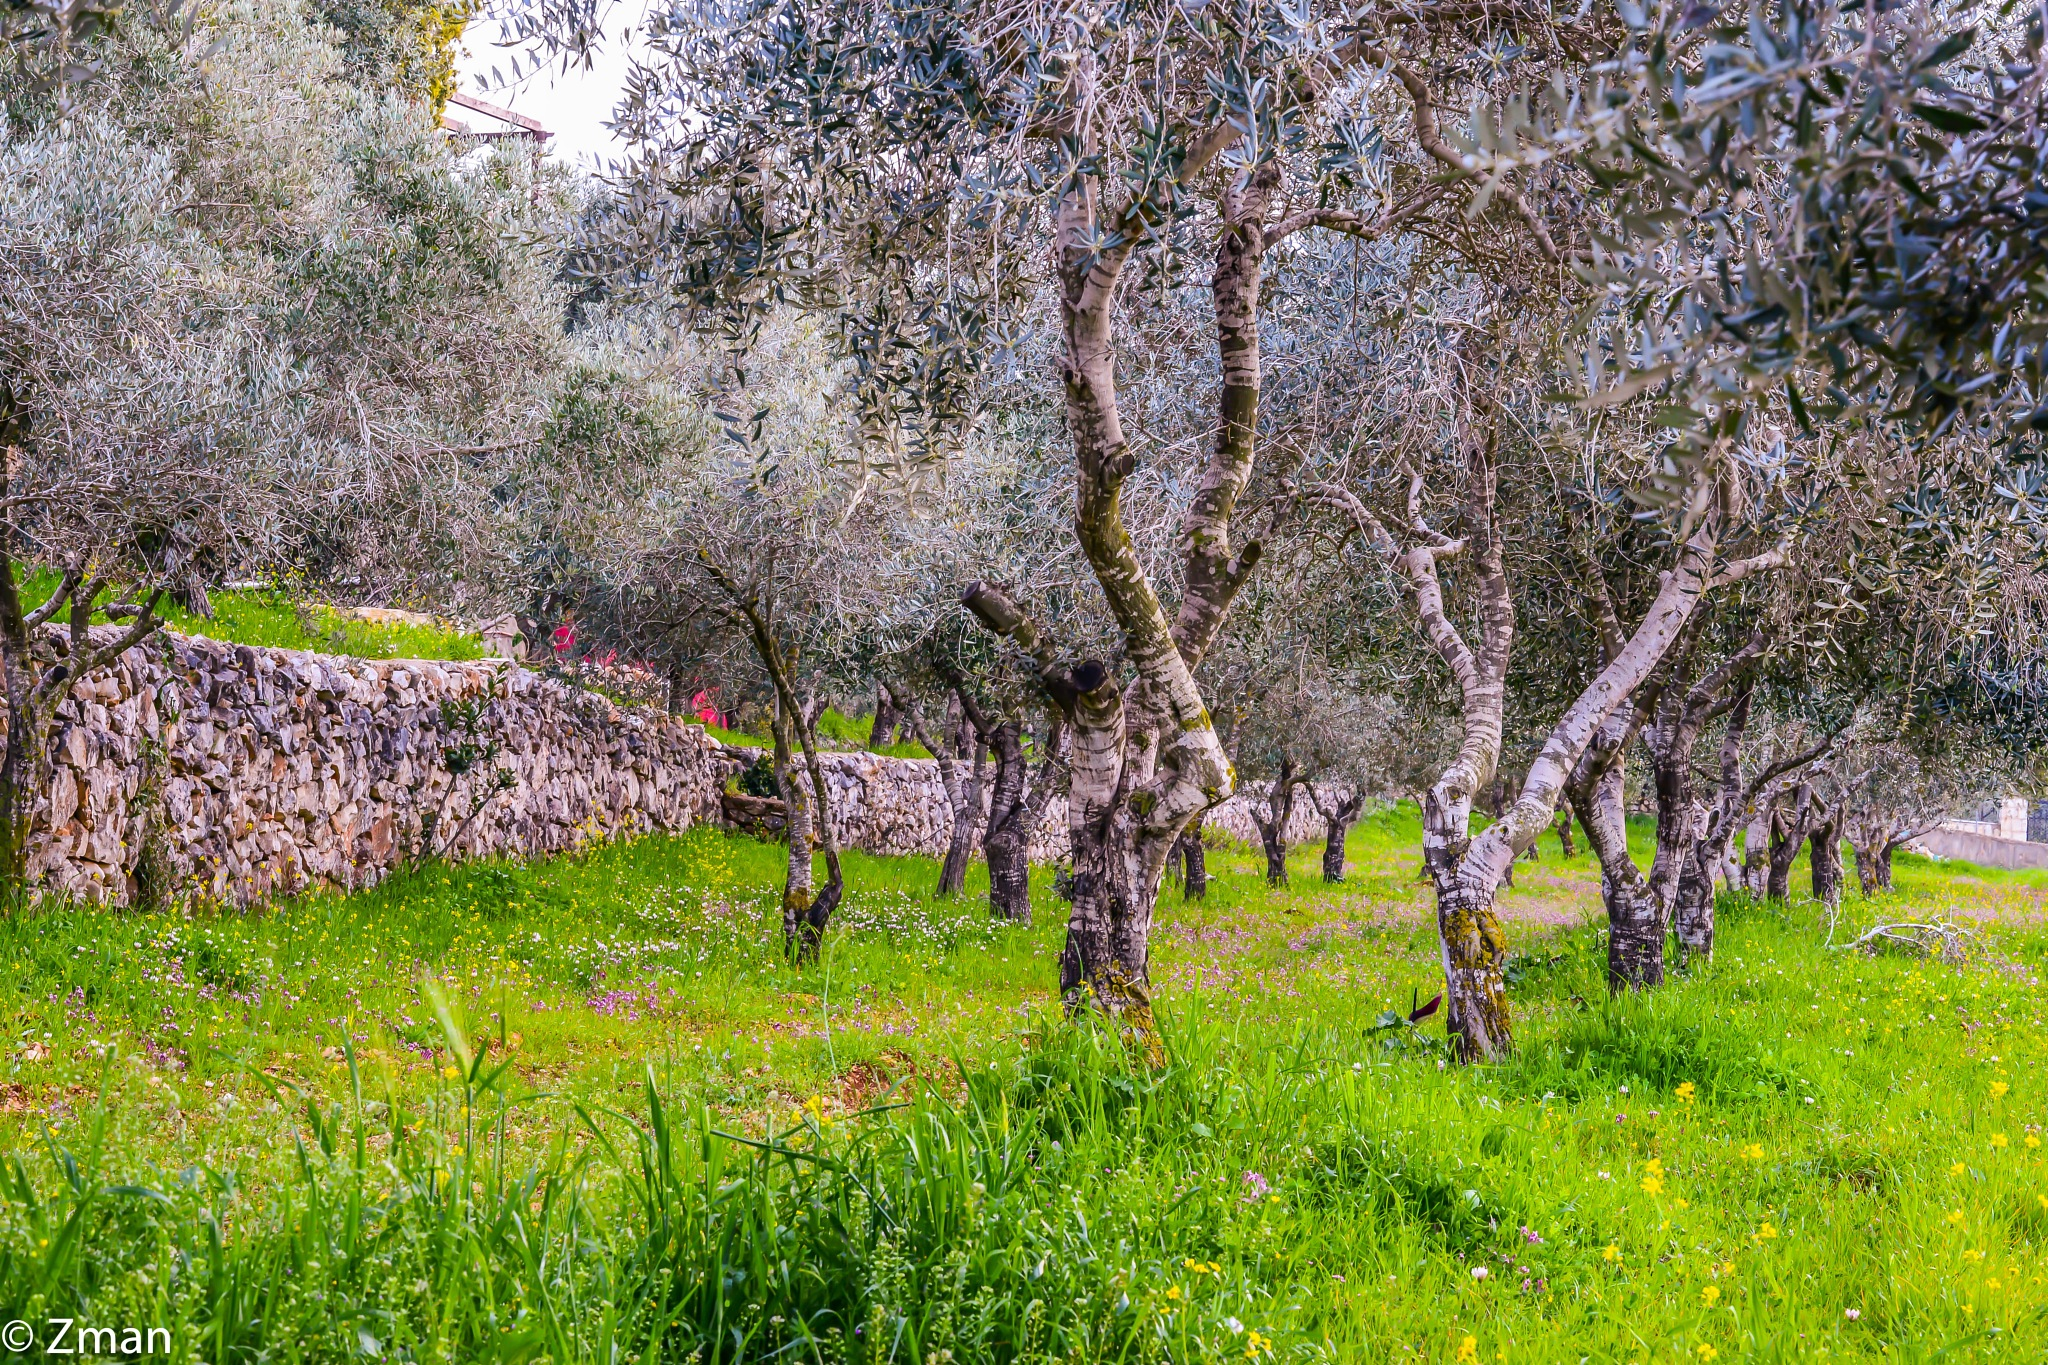 Olive trees in Spring by muhammad.nasser.963